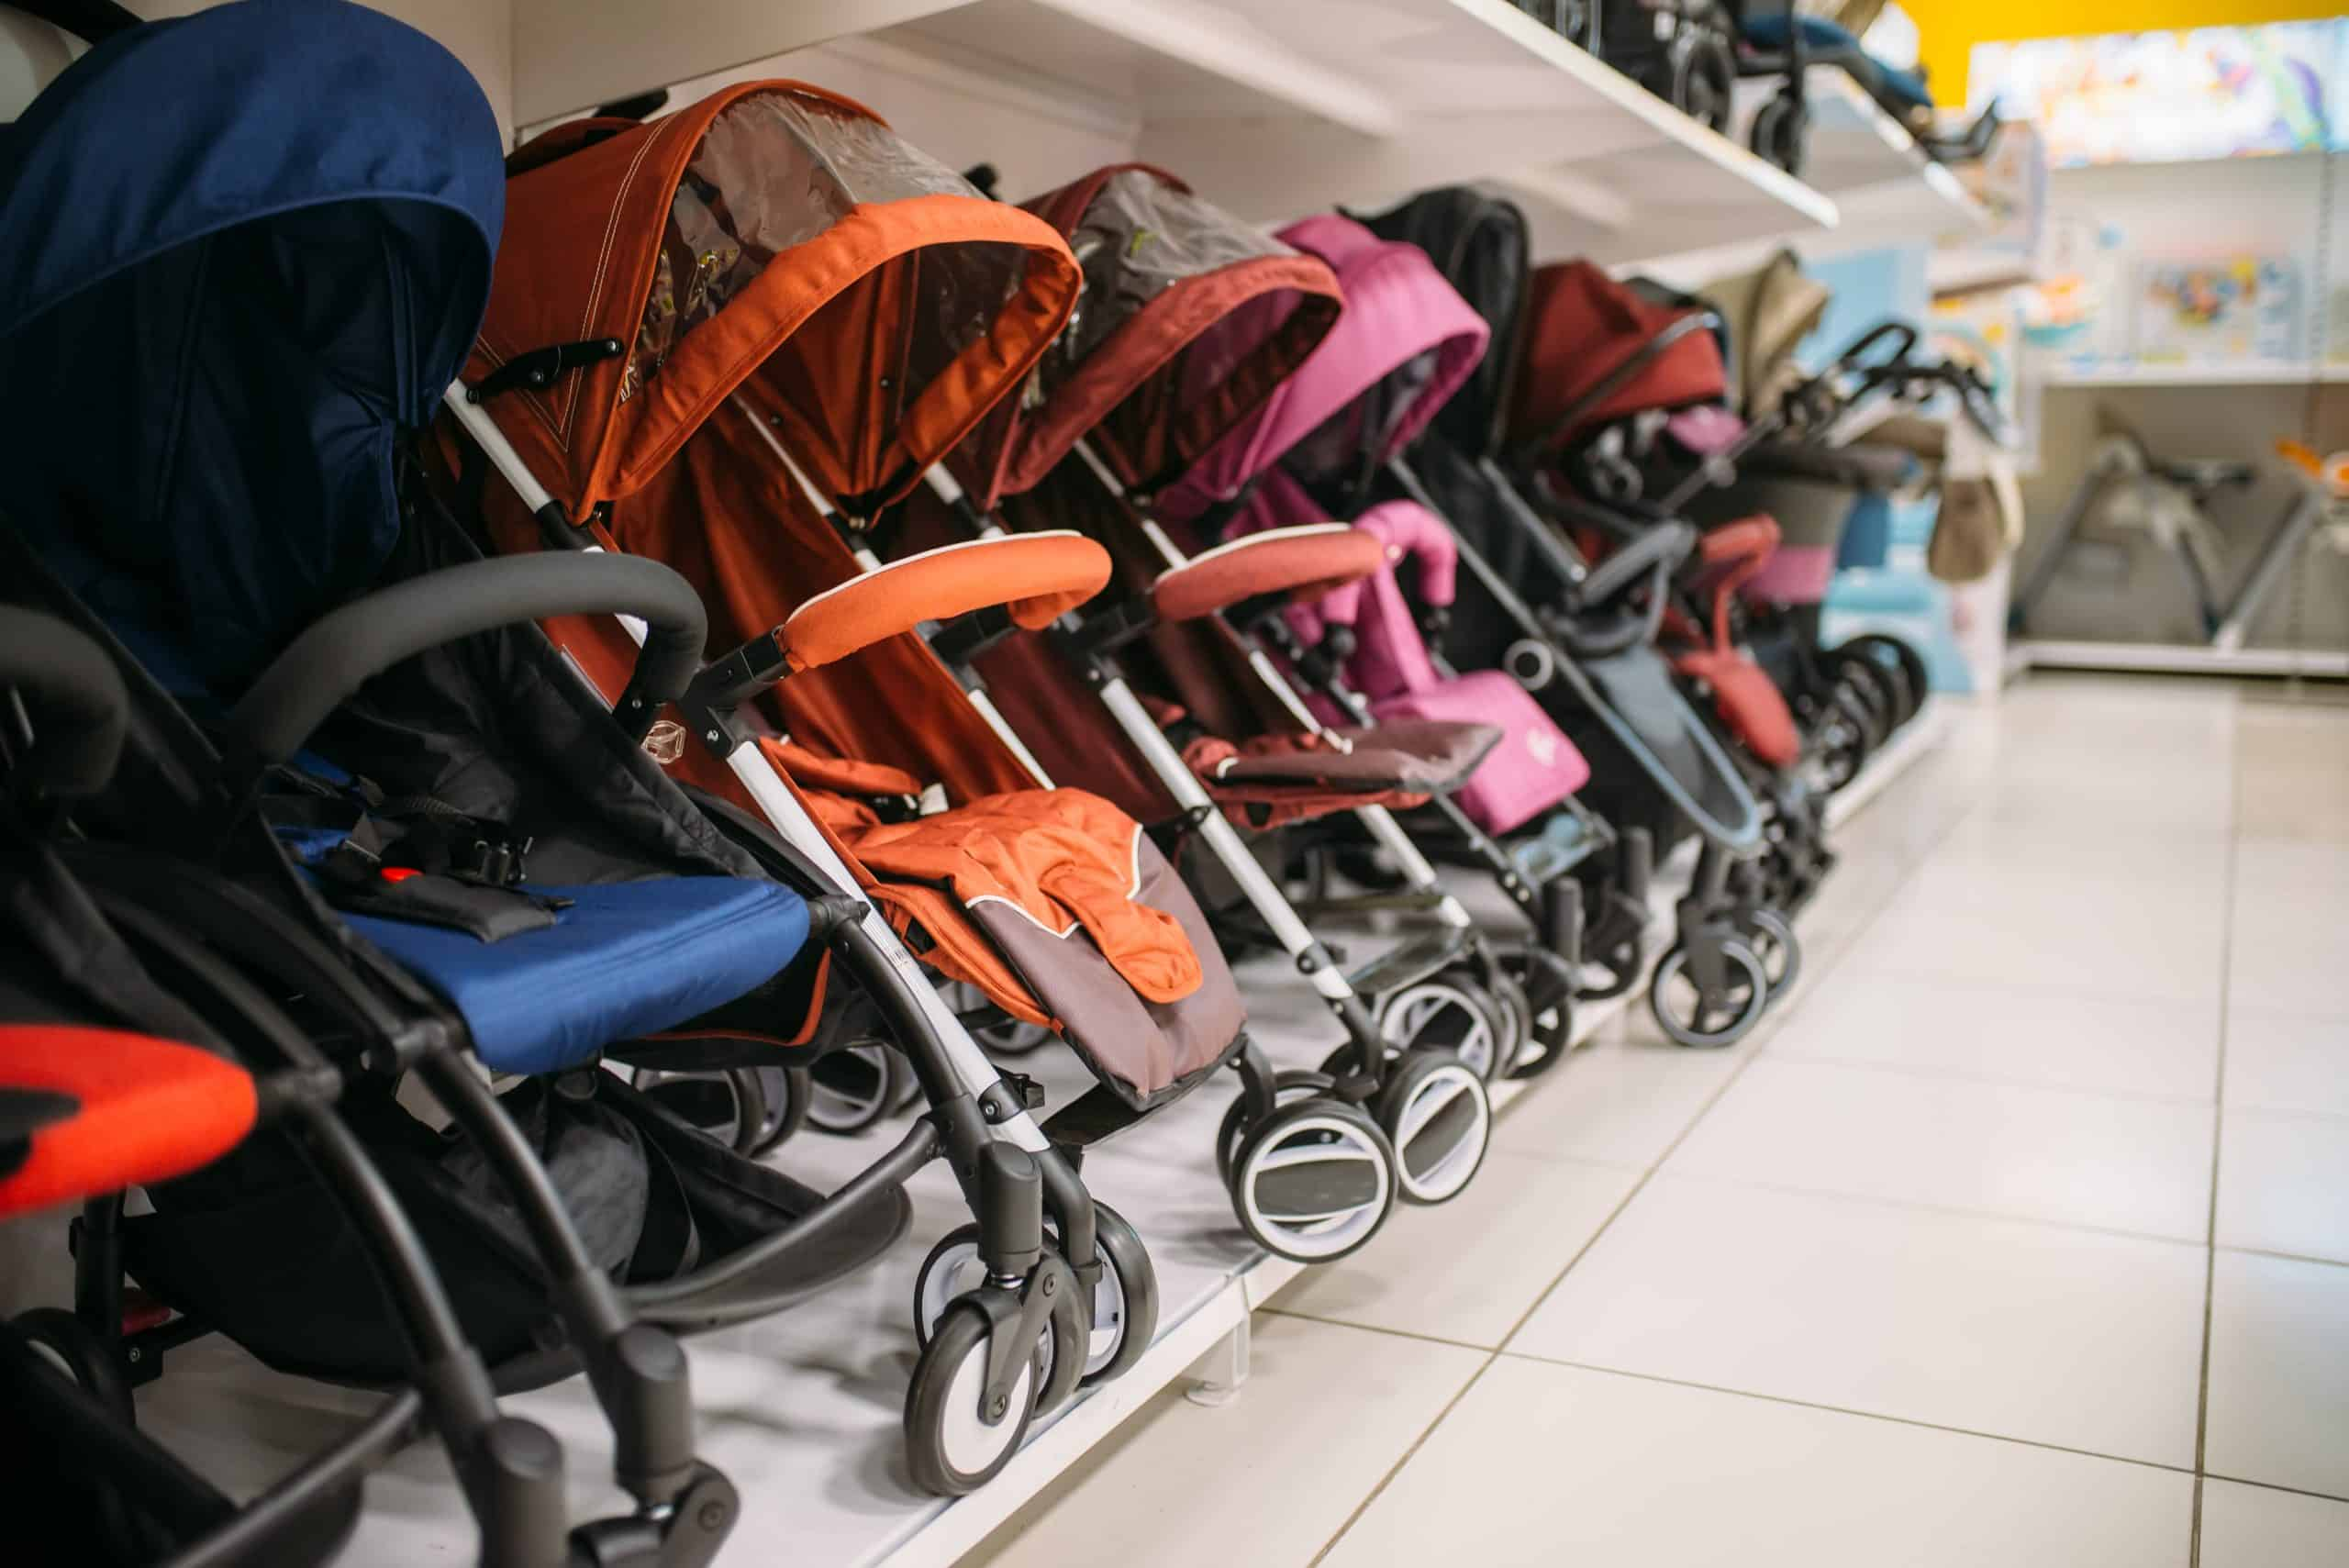 An image showing a row of 3 wheel and 4 wheel strollers in a store